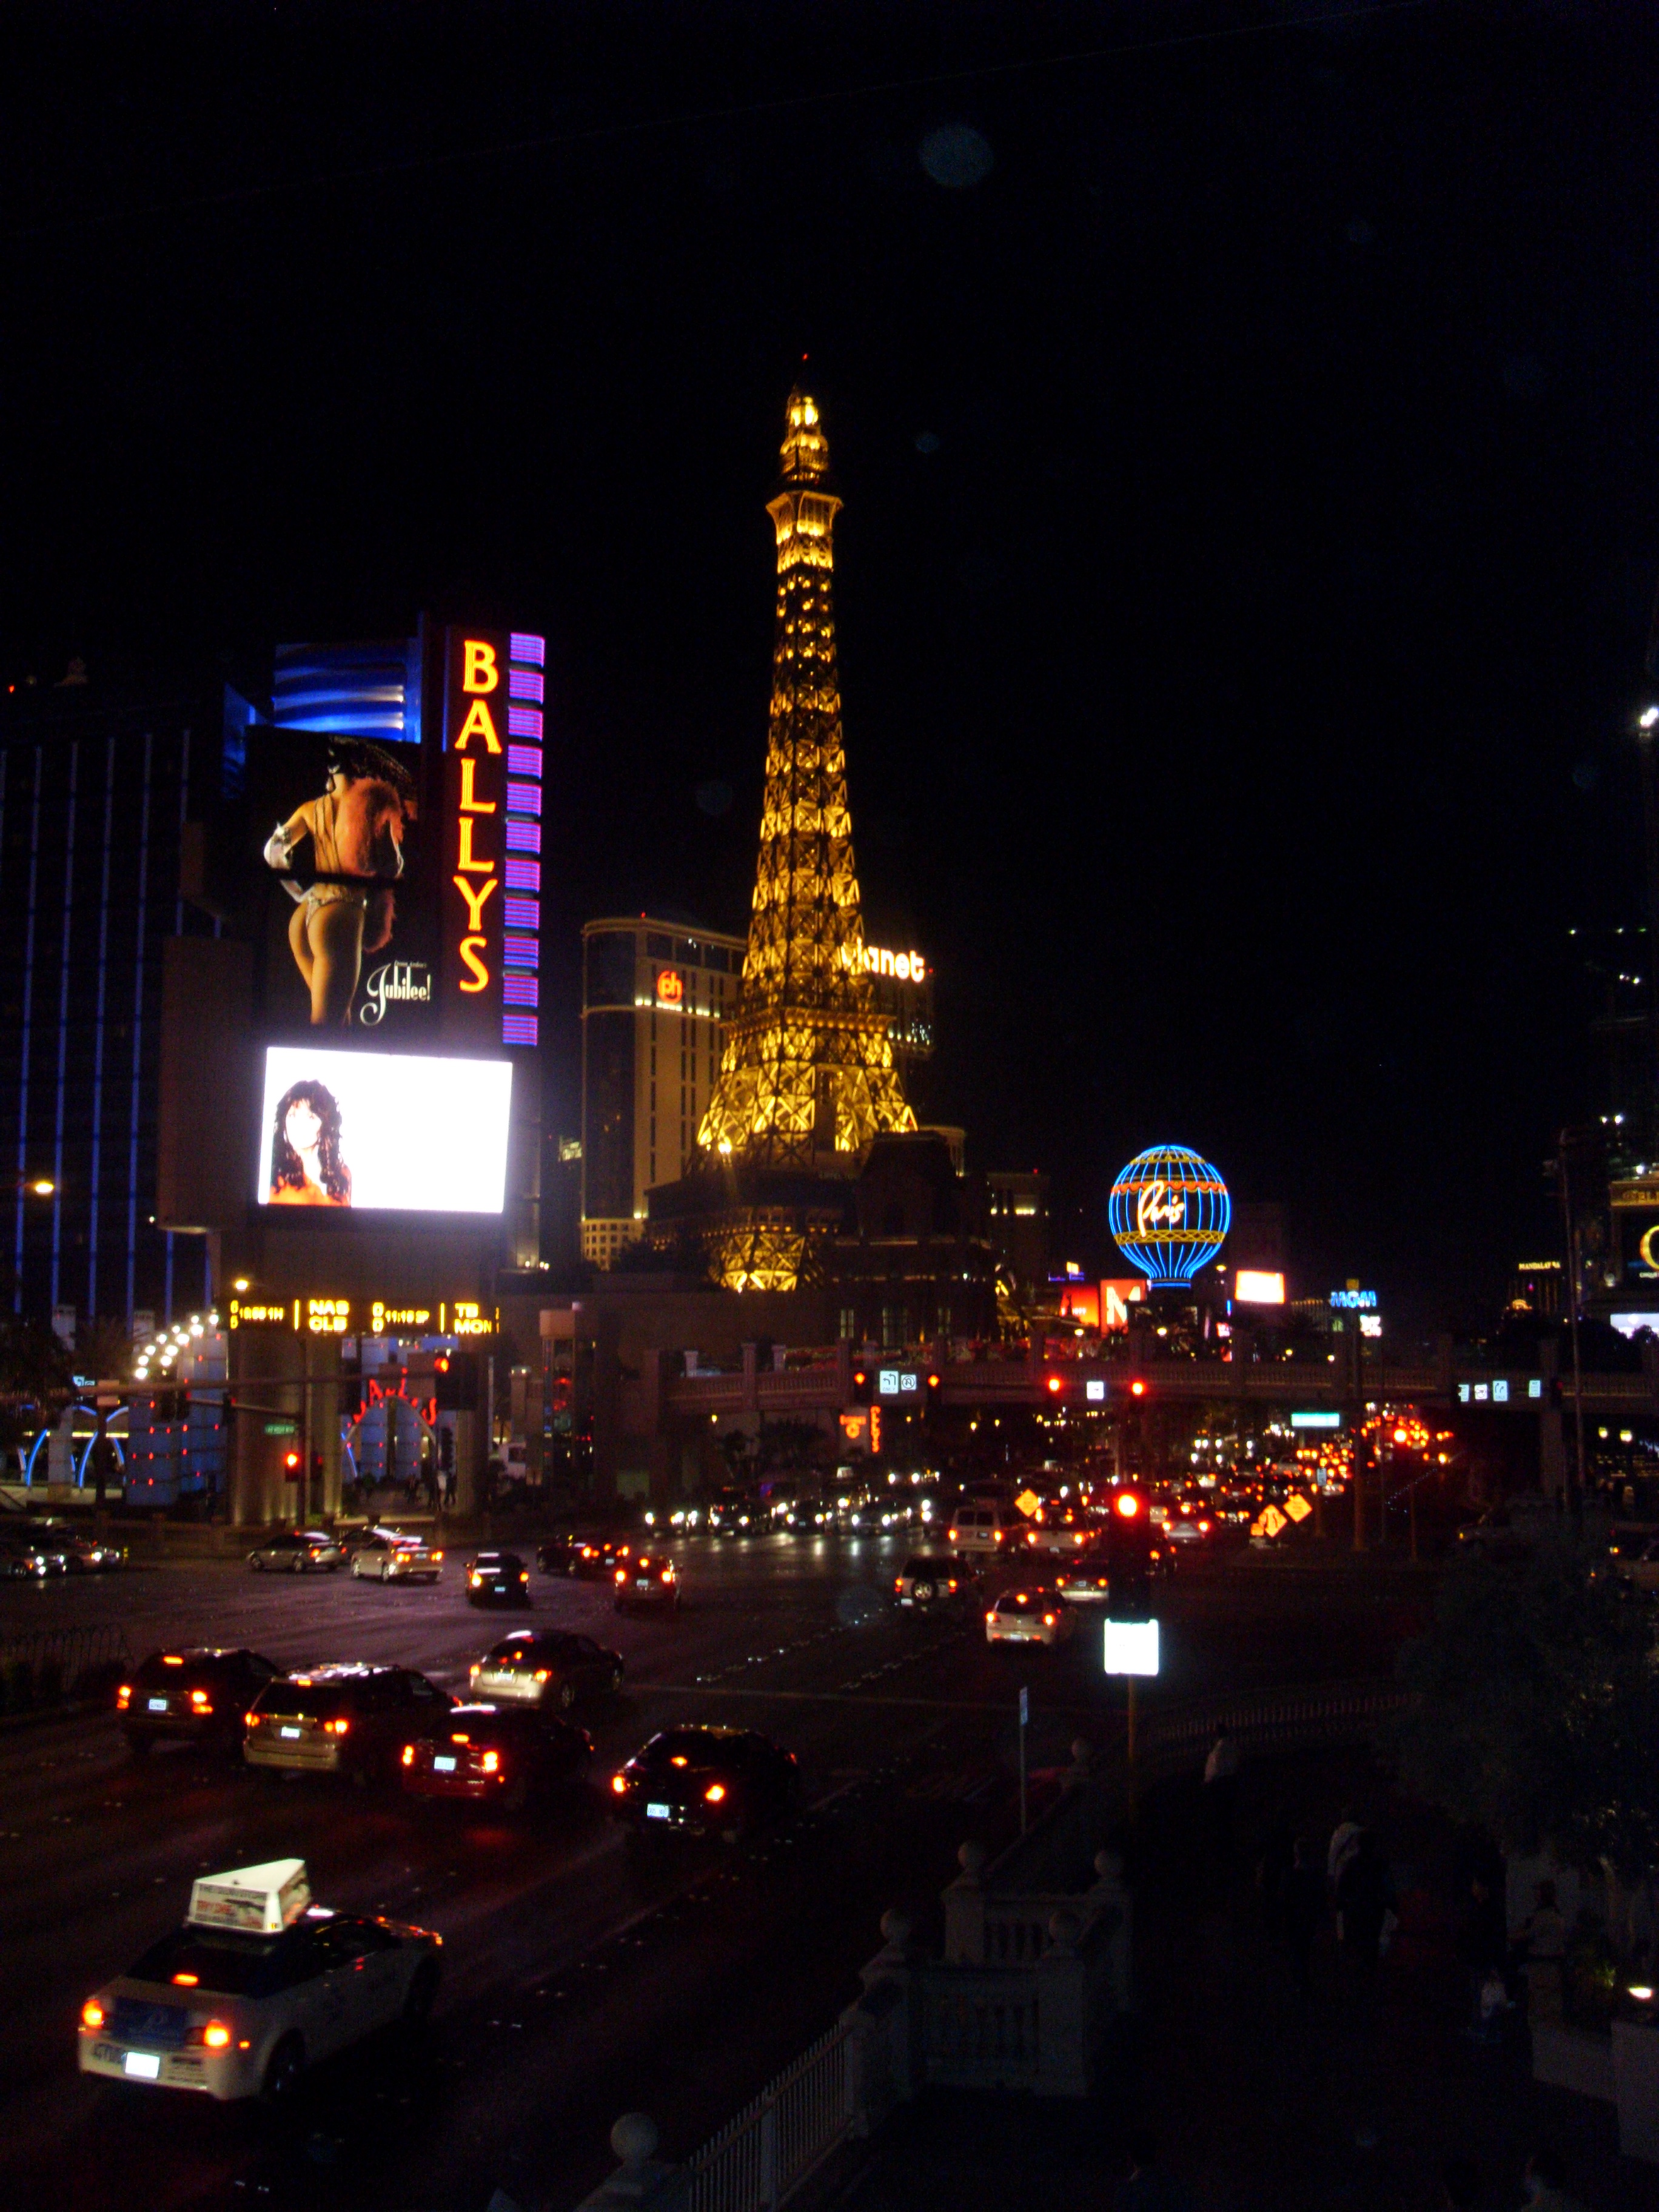 Vegas by night, the city that never sleeps